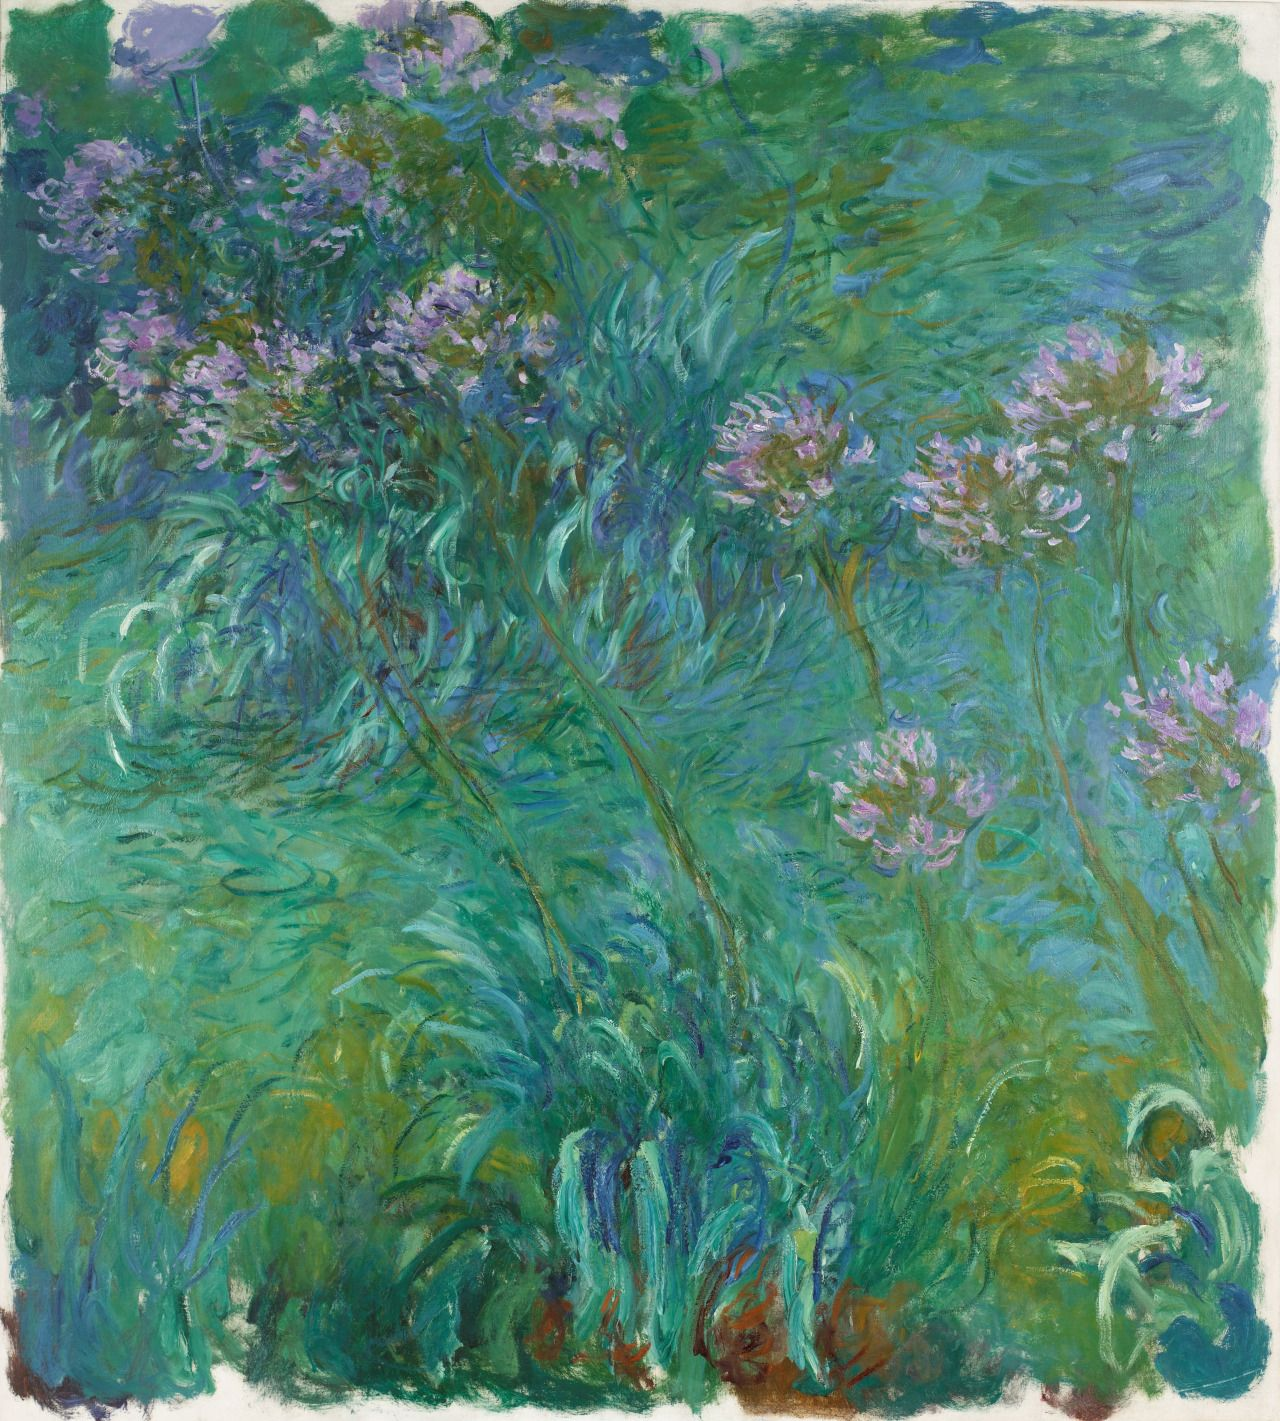 """""""Happy first day of spring! It's snowing in New York, but we're picturing Claude Monet's gardens at Giverny. The artist frequently painted outdoors, drawing endless inspiration from the plants,..."""